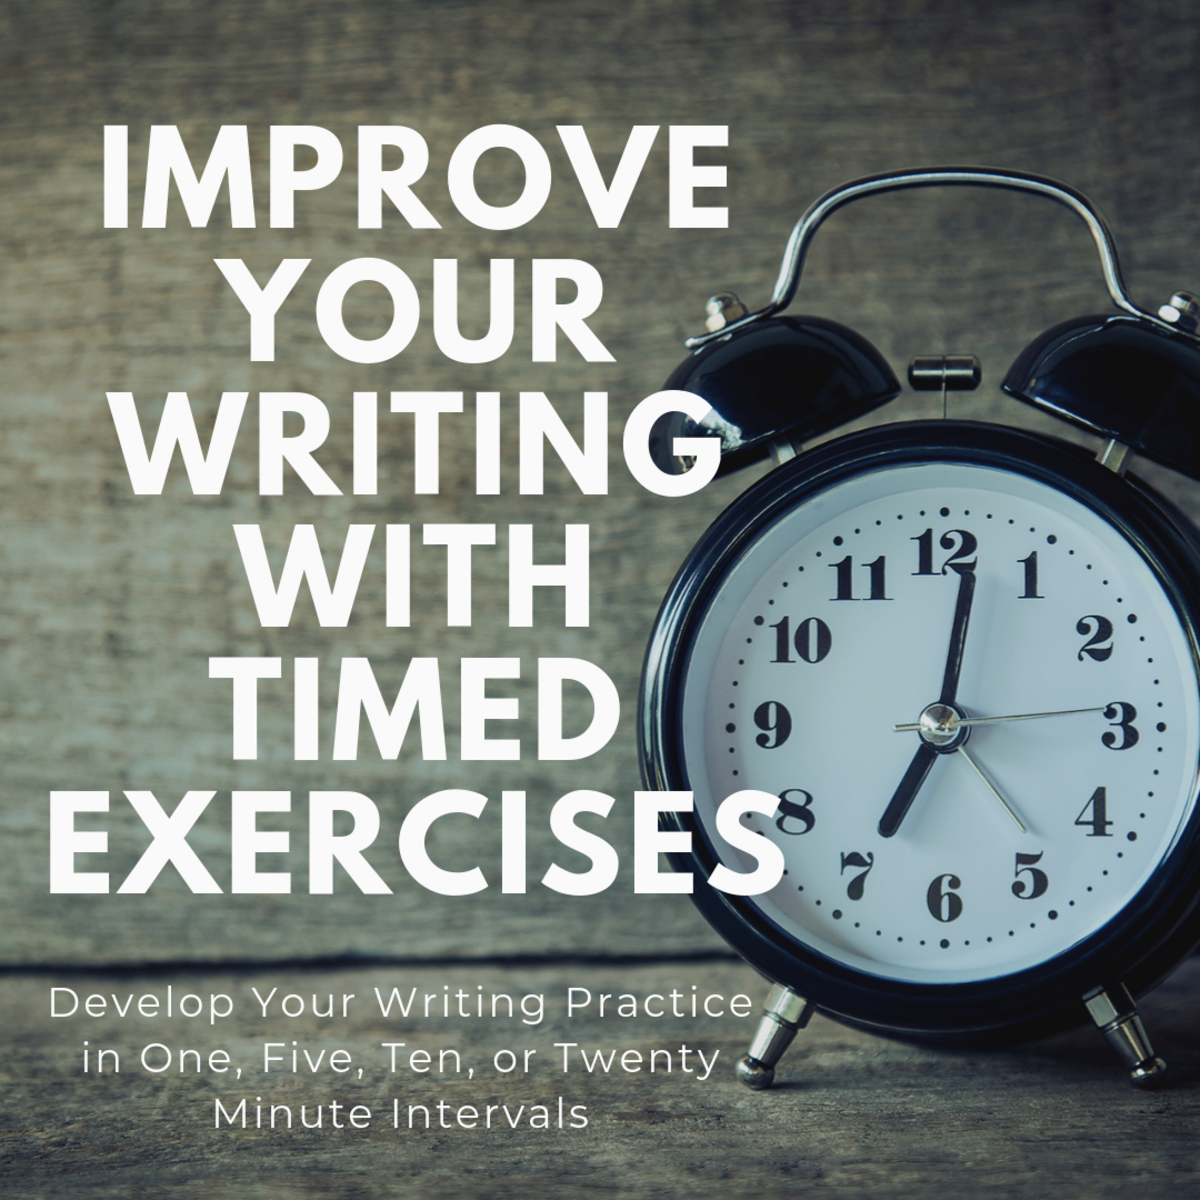 Timed Writing Exercises to Improve Your Writing